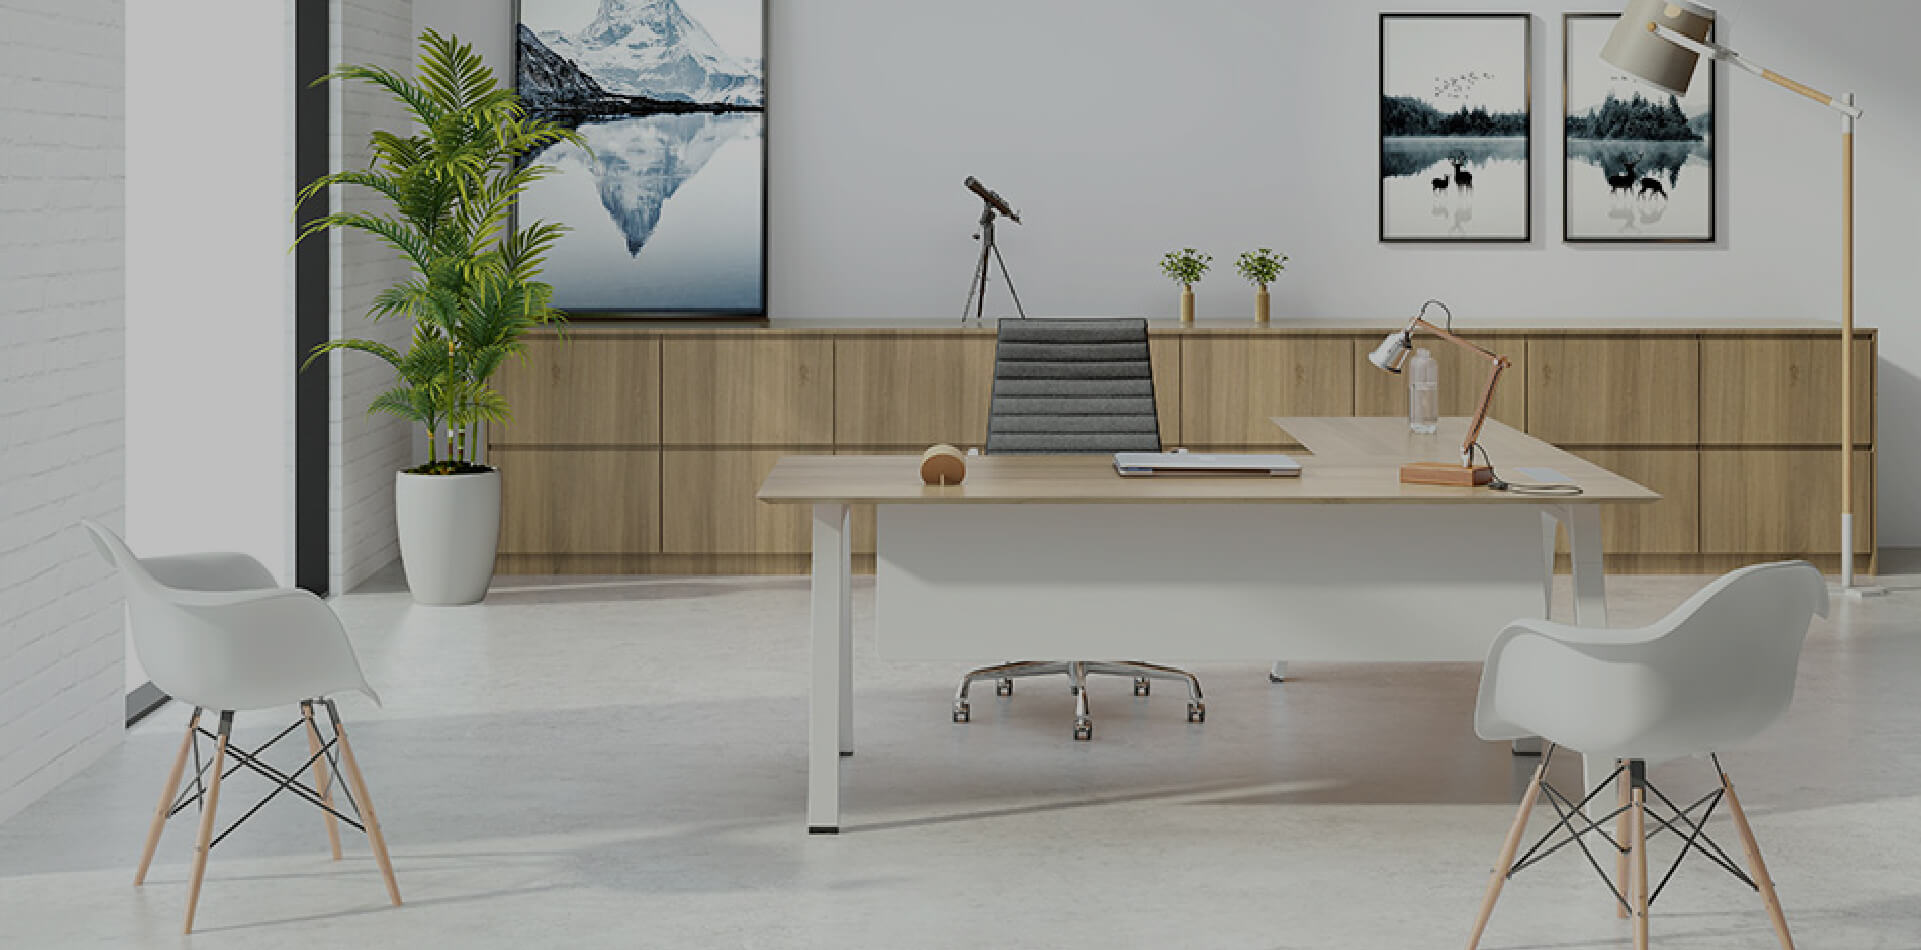 White office room with images hung on the wall